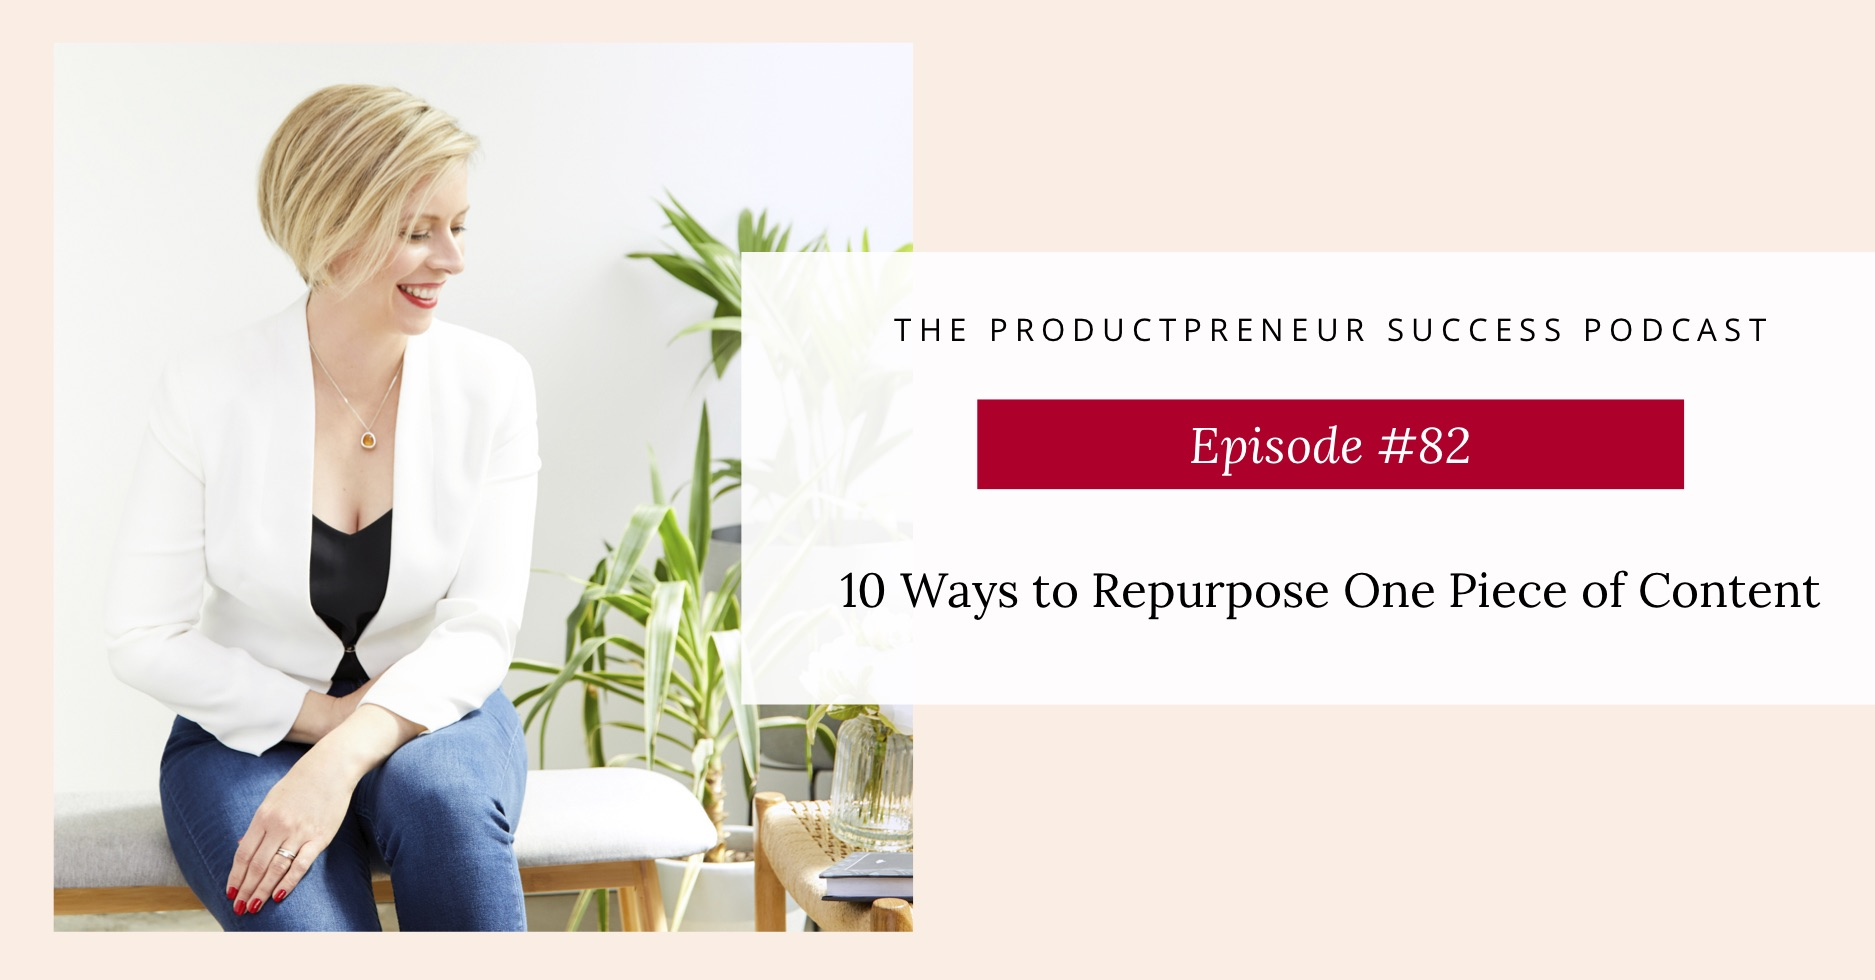 Podcast Episode 82 about how to repurpose content in 10 ways